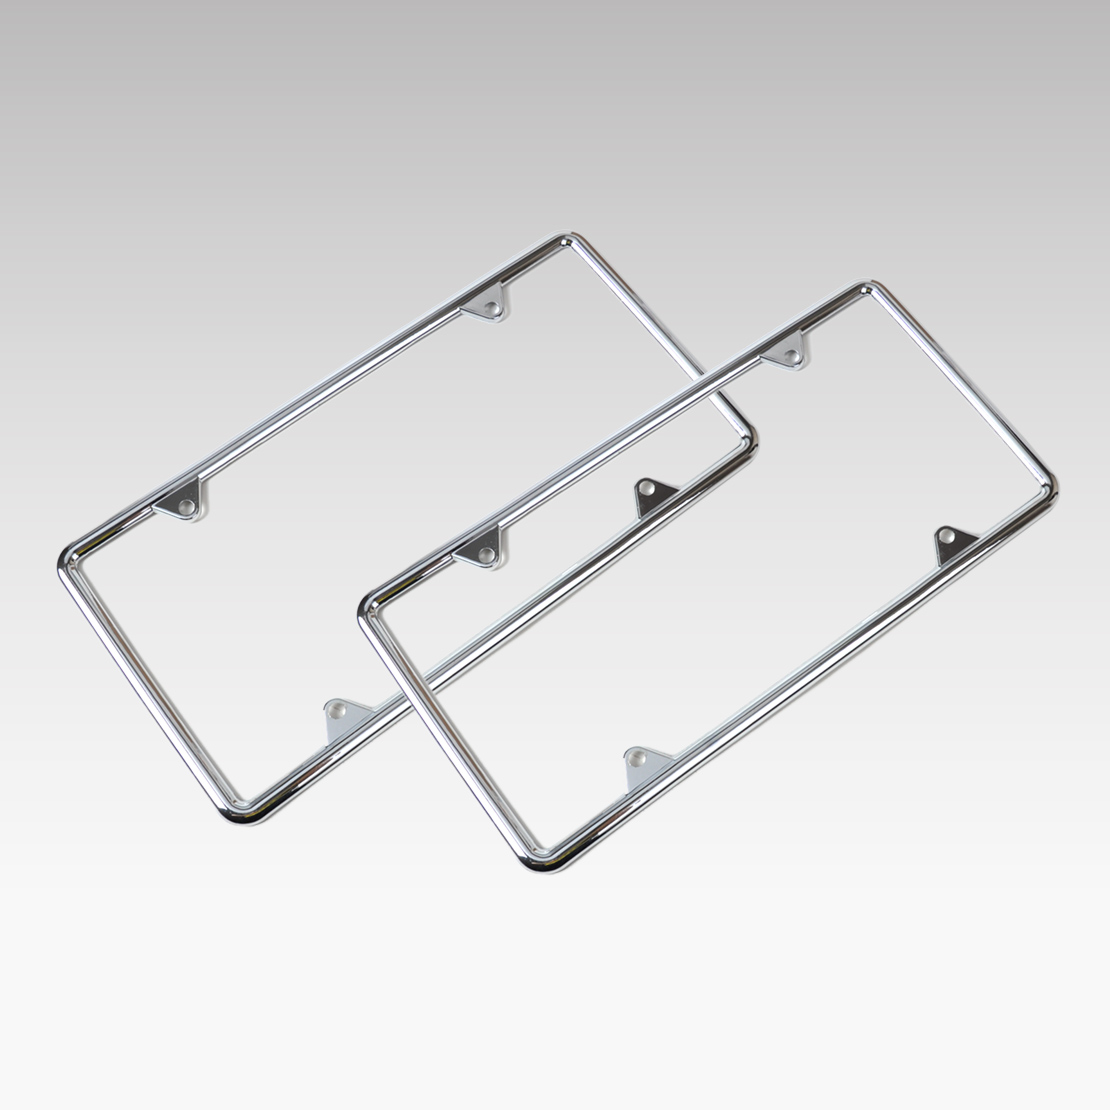 DWCX 2Pcs Universal Car Zinc Alloy License Plate Frame For Mercedes ...